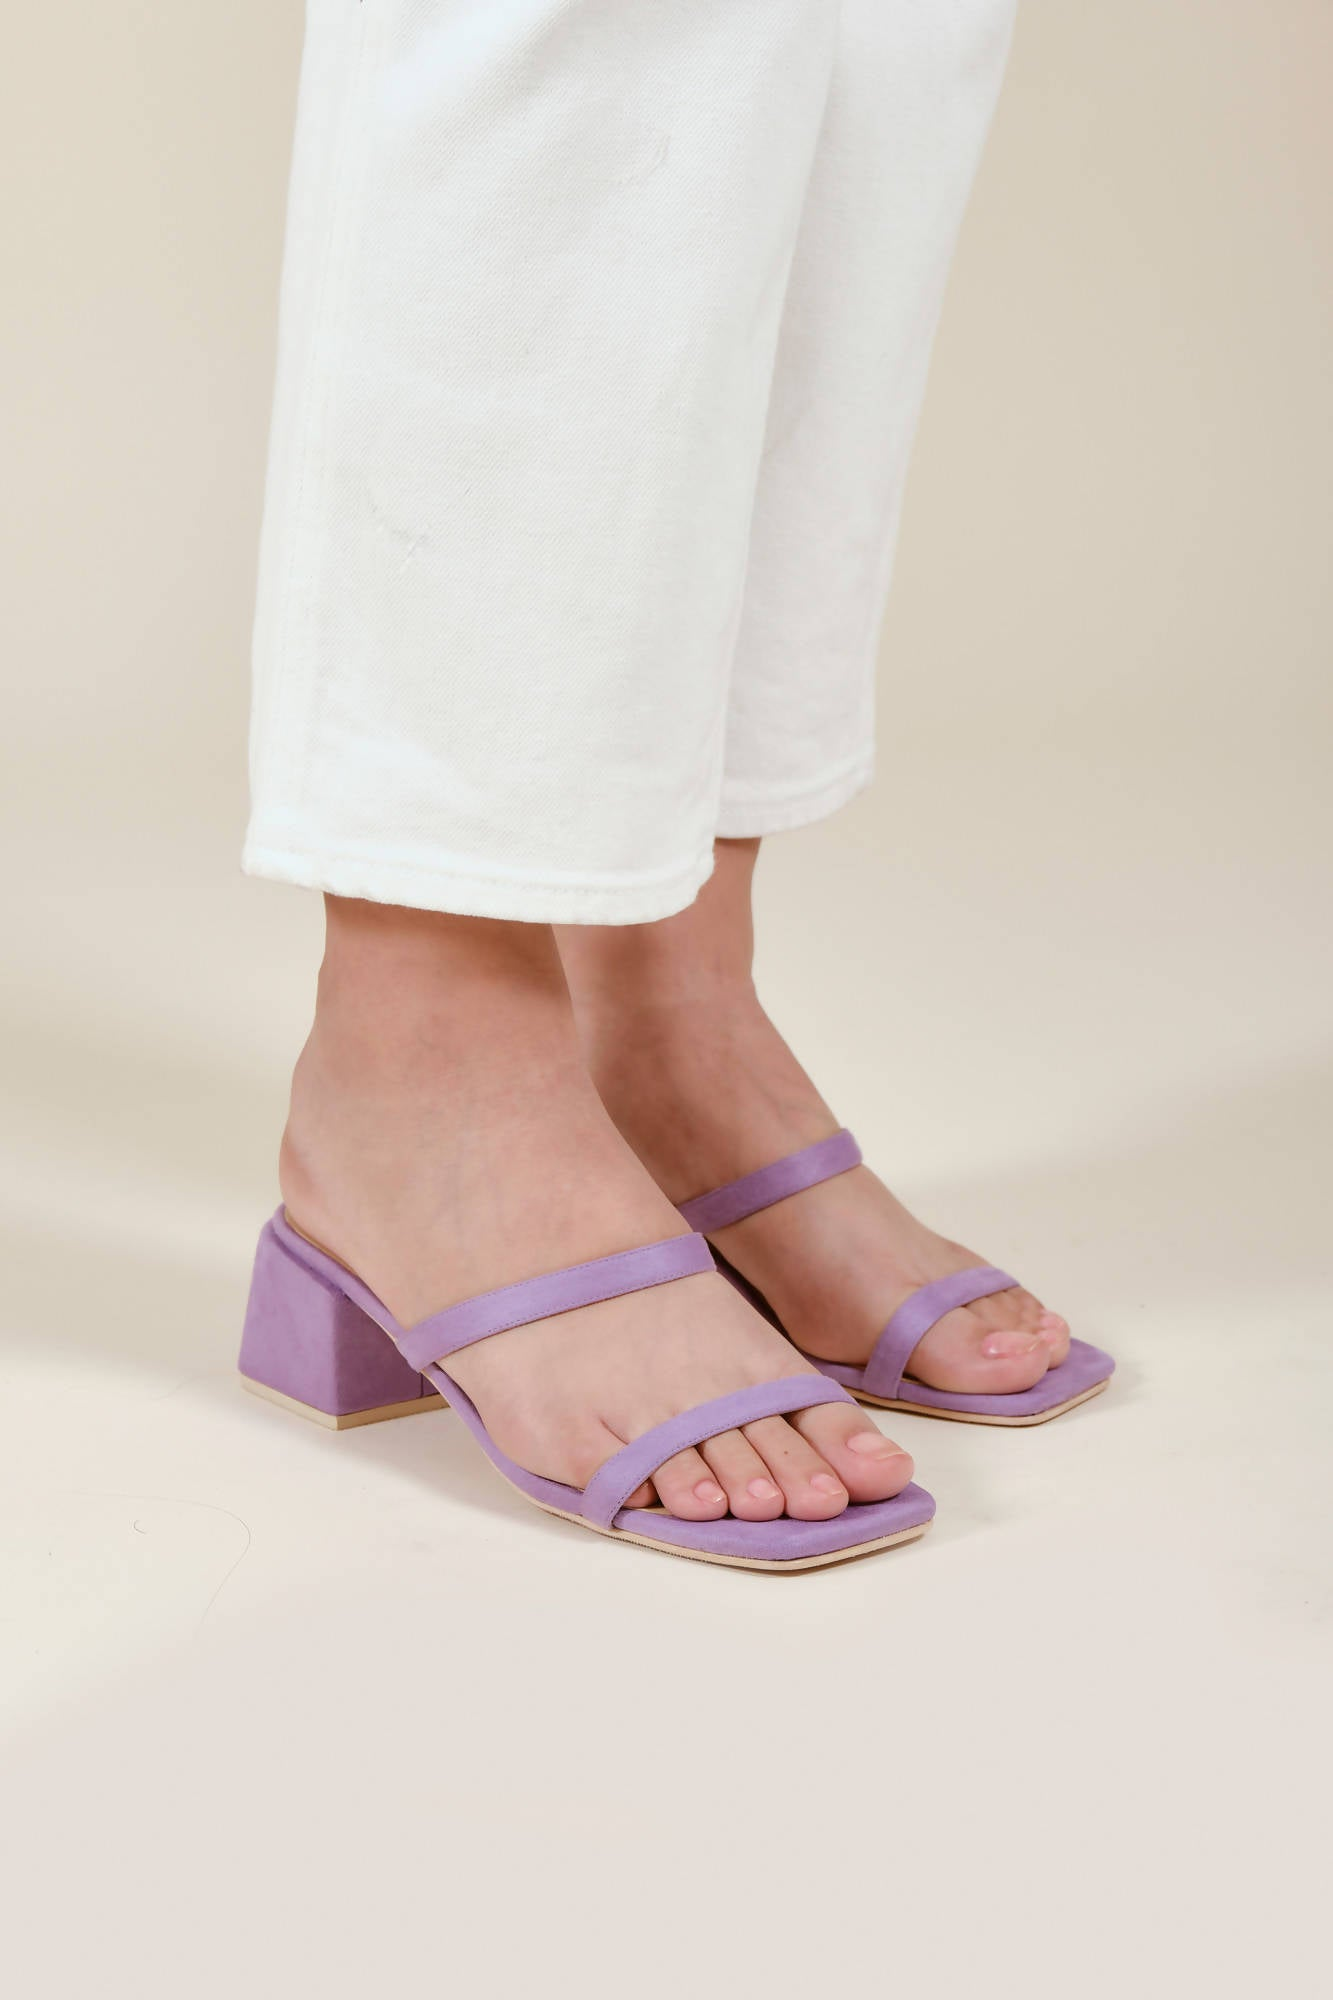 The Livie in Lilac